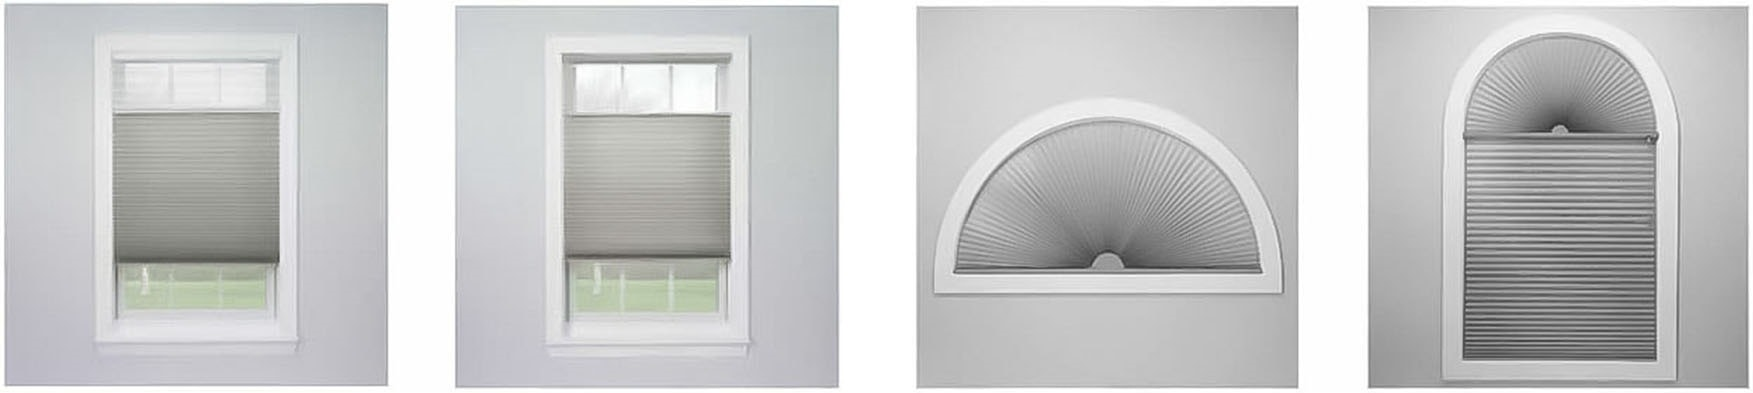 Pleated blinds form shapes windows